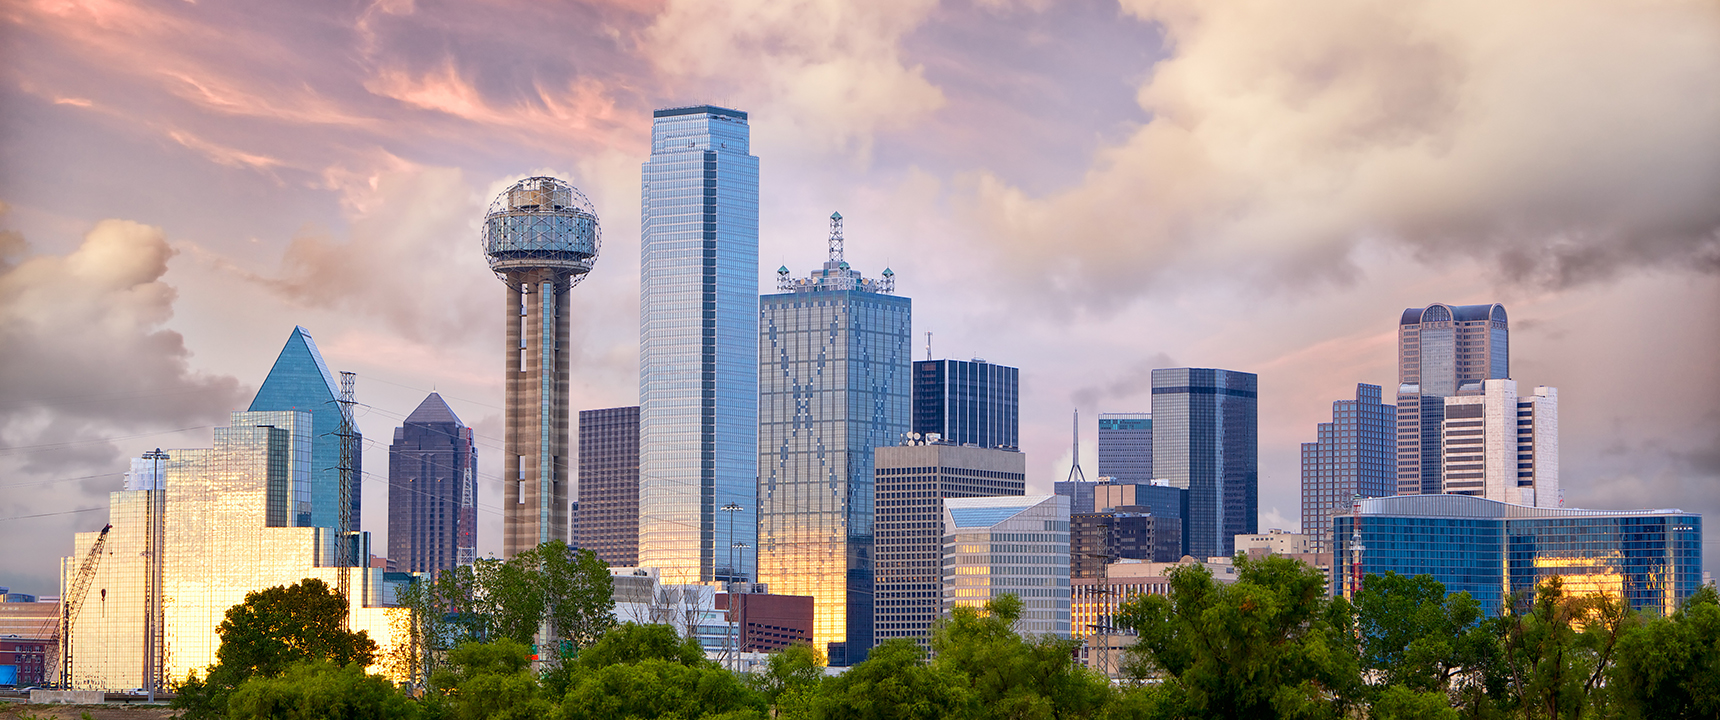 Photo of Dallas, Texas where the North Texas Business Center is located just outside of.